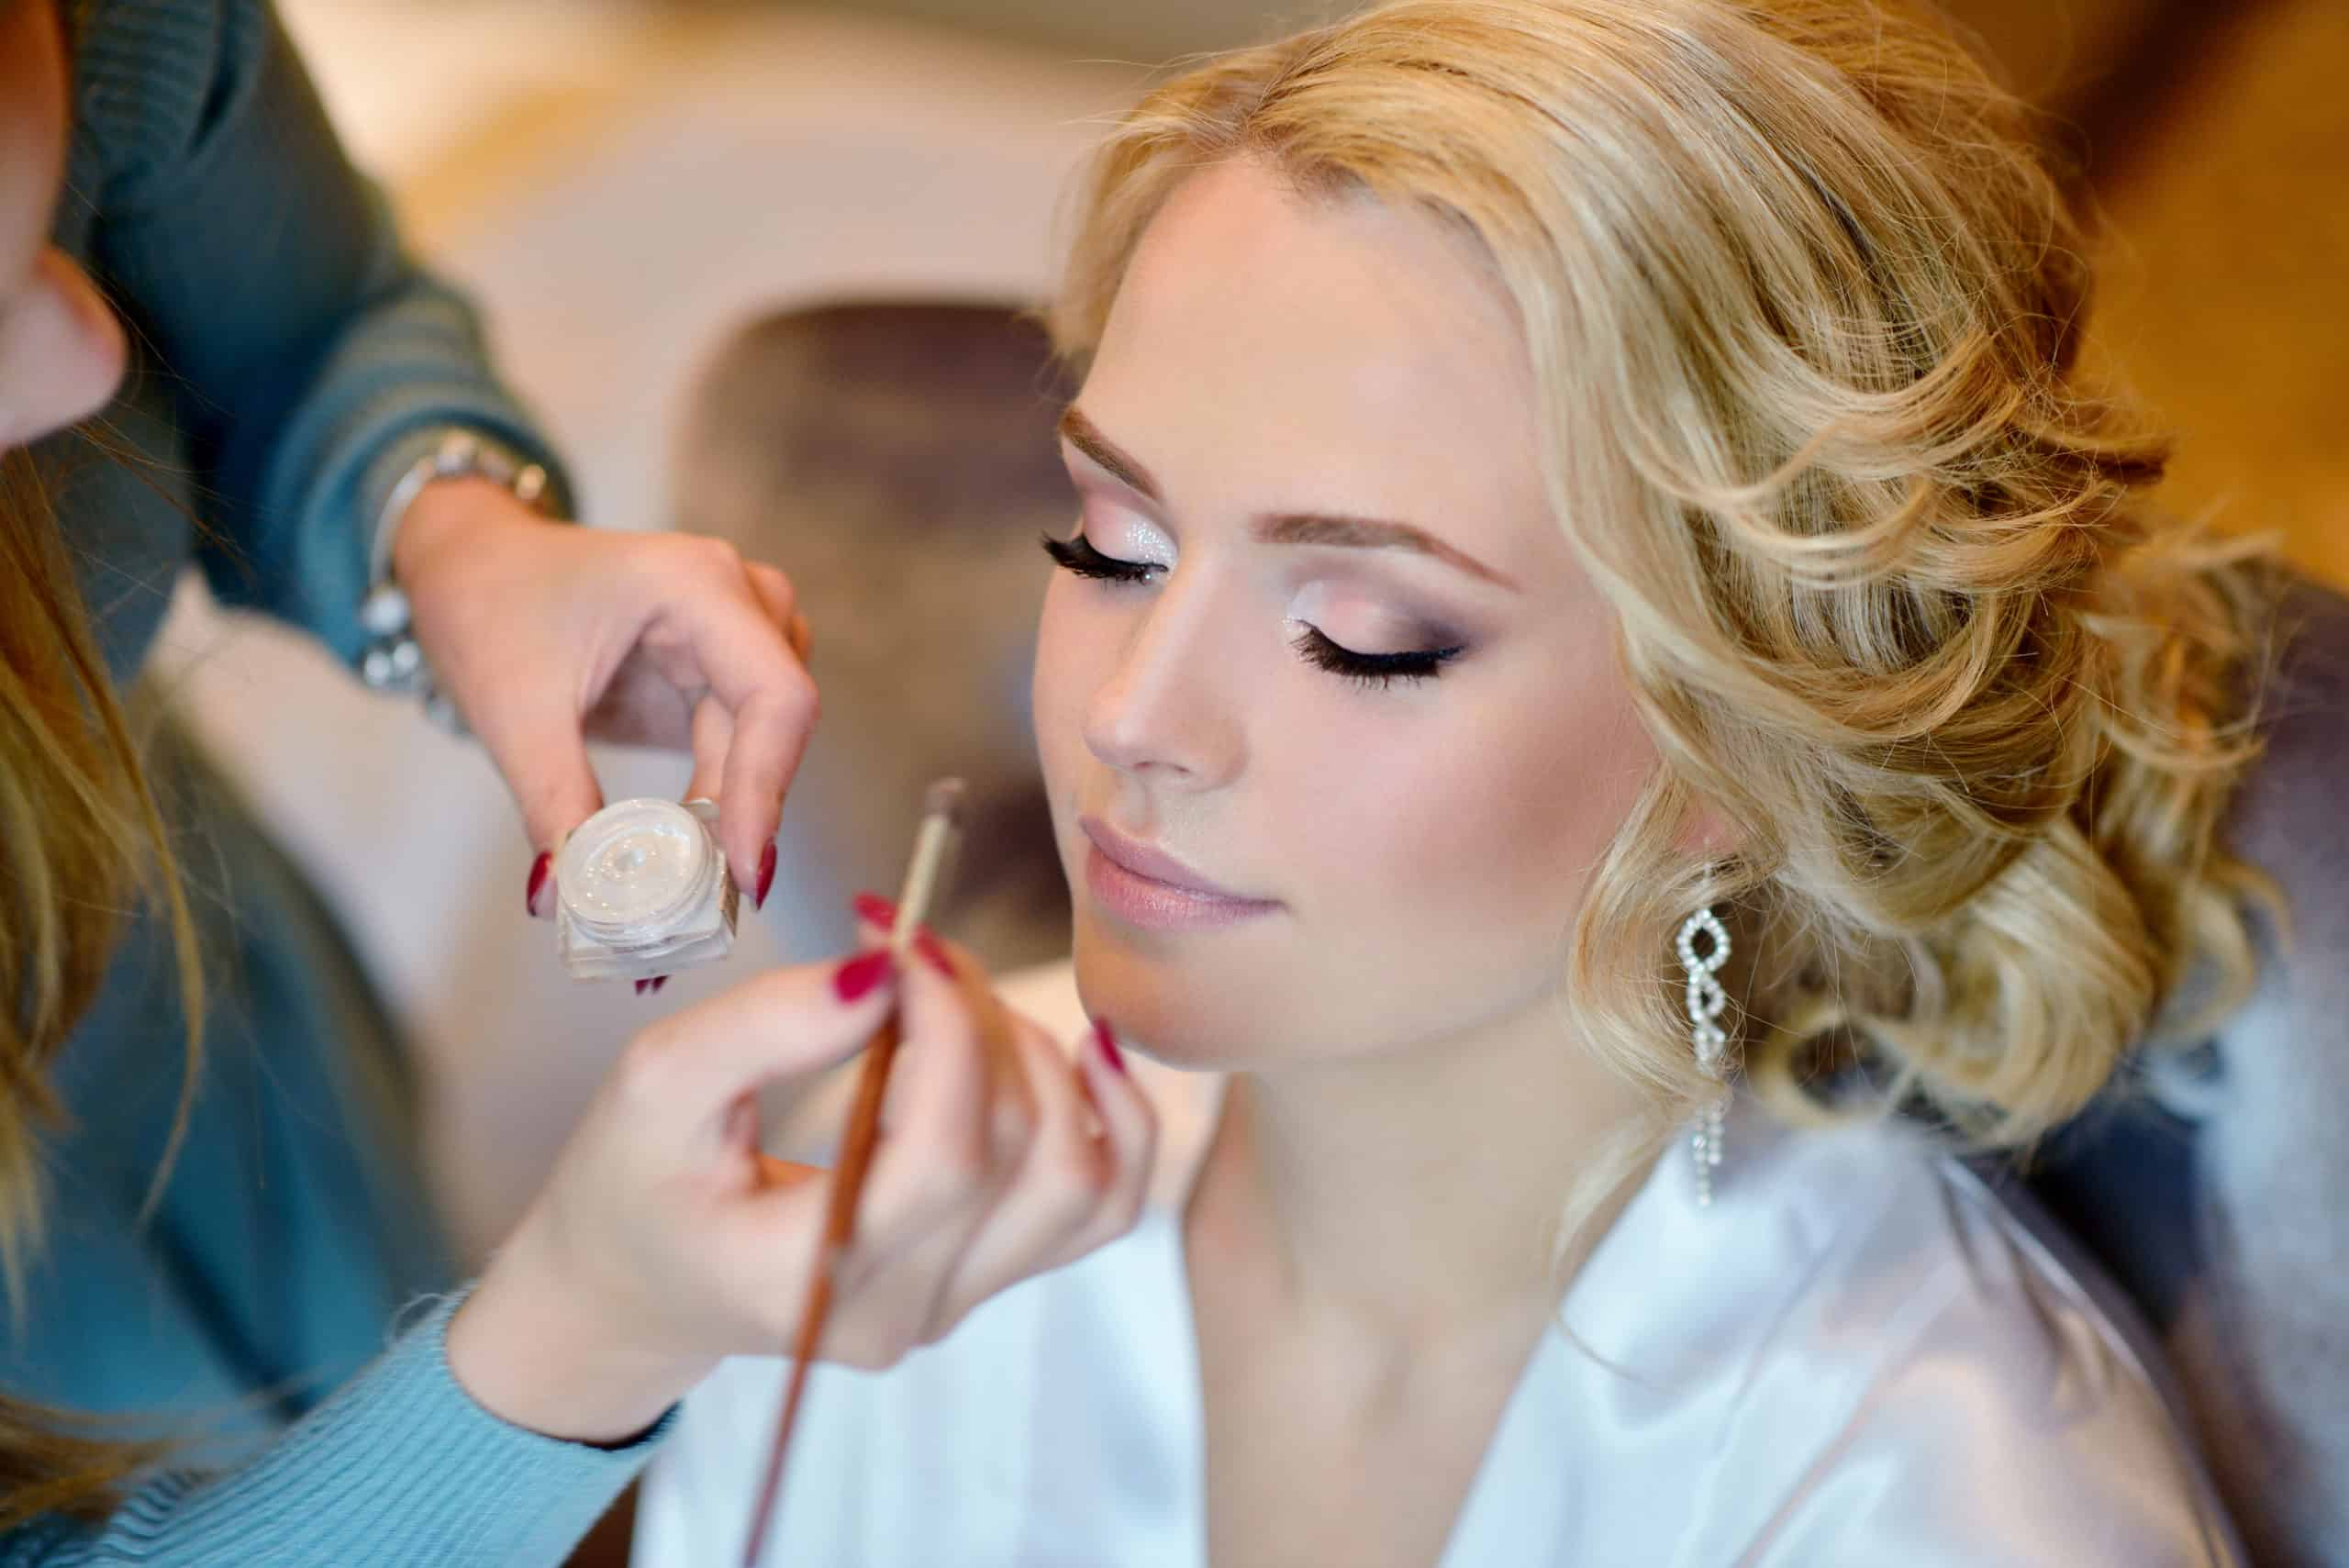 How to become a professional makeup artist